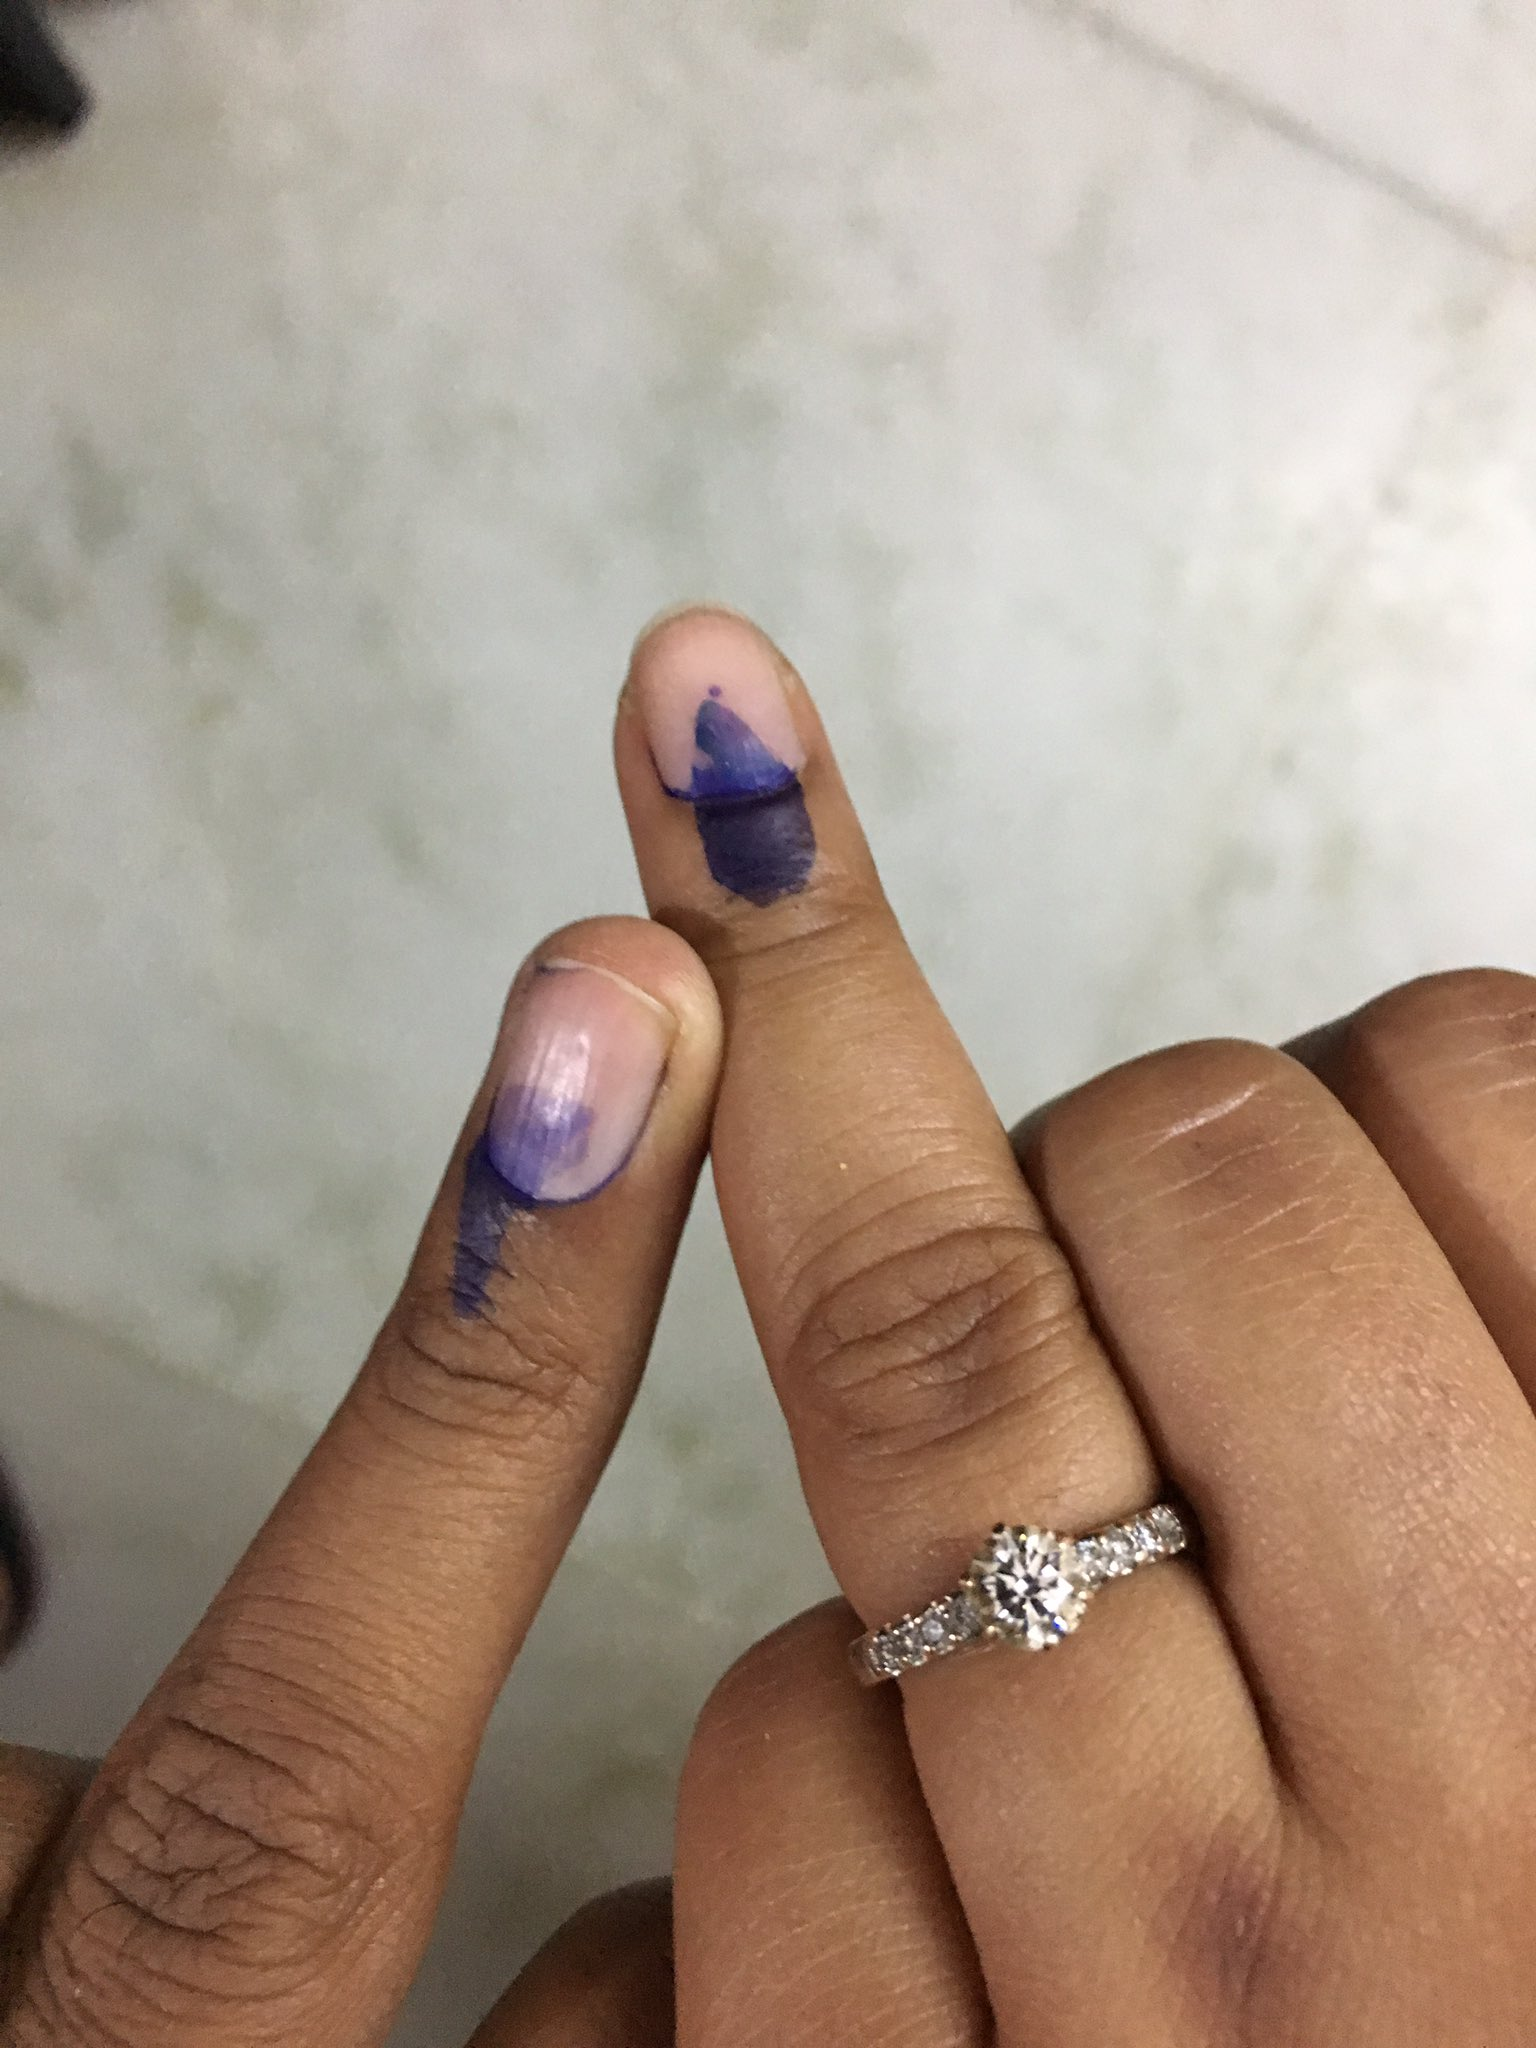 #MCDelections2017 Check. Hoping whosoever wins take concrete steps to clean delhi. #DelhiVotes ���� https://t.co/PRm2TFQgFF